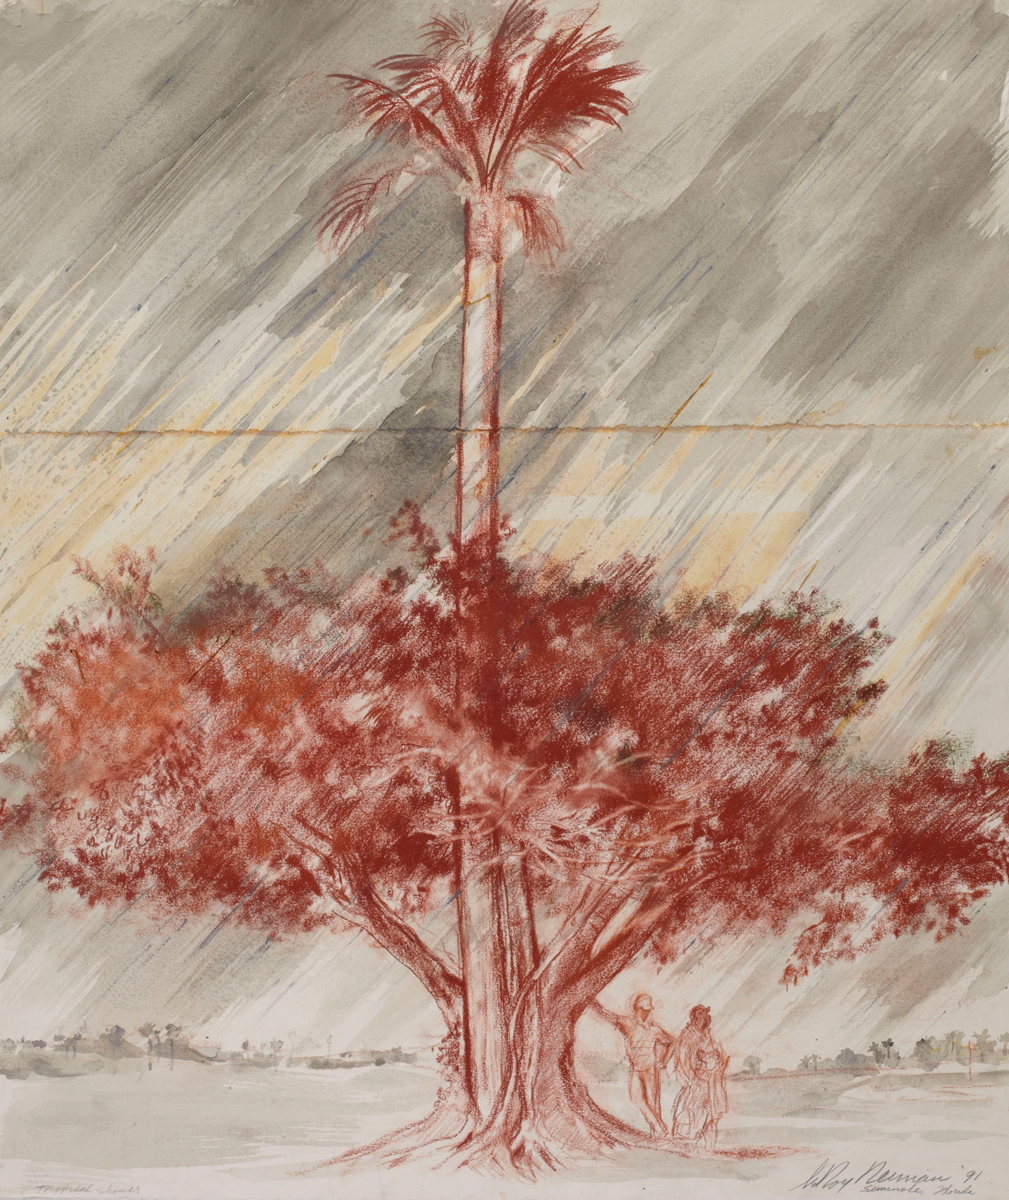 Tropical Shower at the Seminole Florida Golf Course, Mixed Media on Paper,  35.5 X 29.75 in, 1991